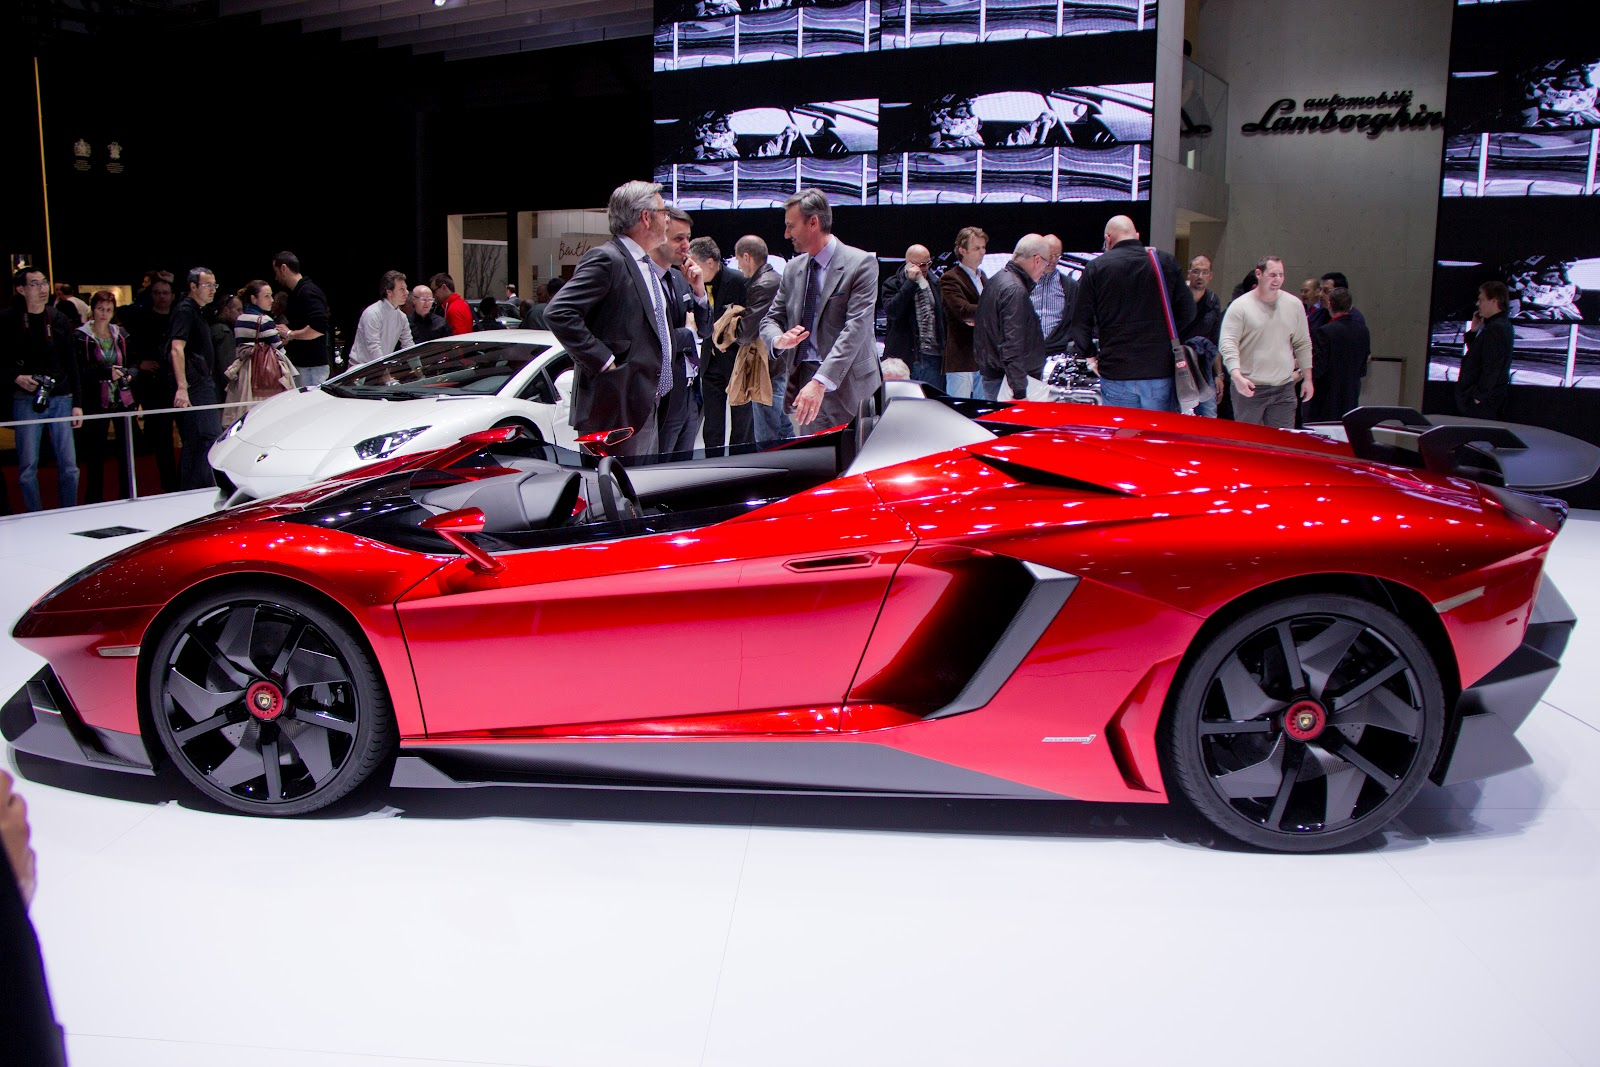 The Lamborghini Aventador J A Car From The Future